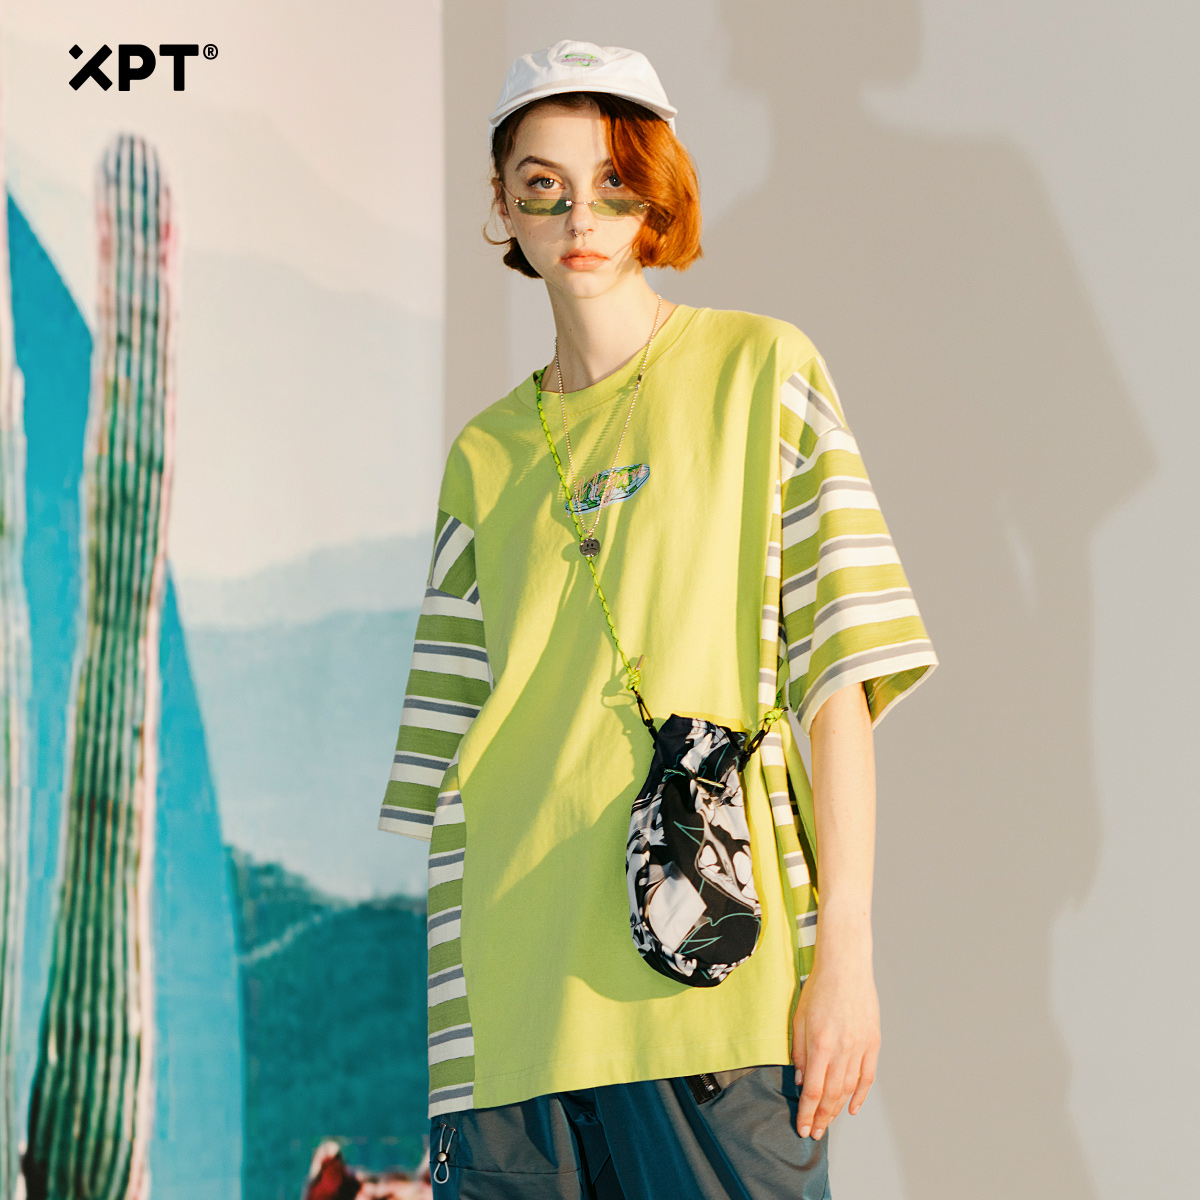 XPT personalized fashion brand half sleeve T-shirt Hong Kong style contrast stripe stitching medium sleeve clothes top fashion couple t-shirt men and women